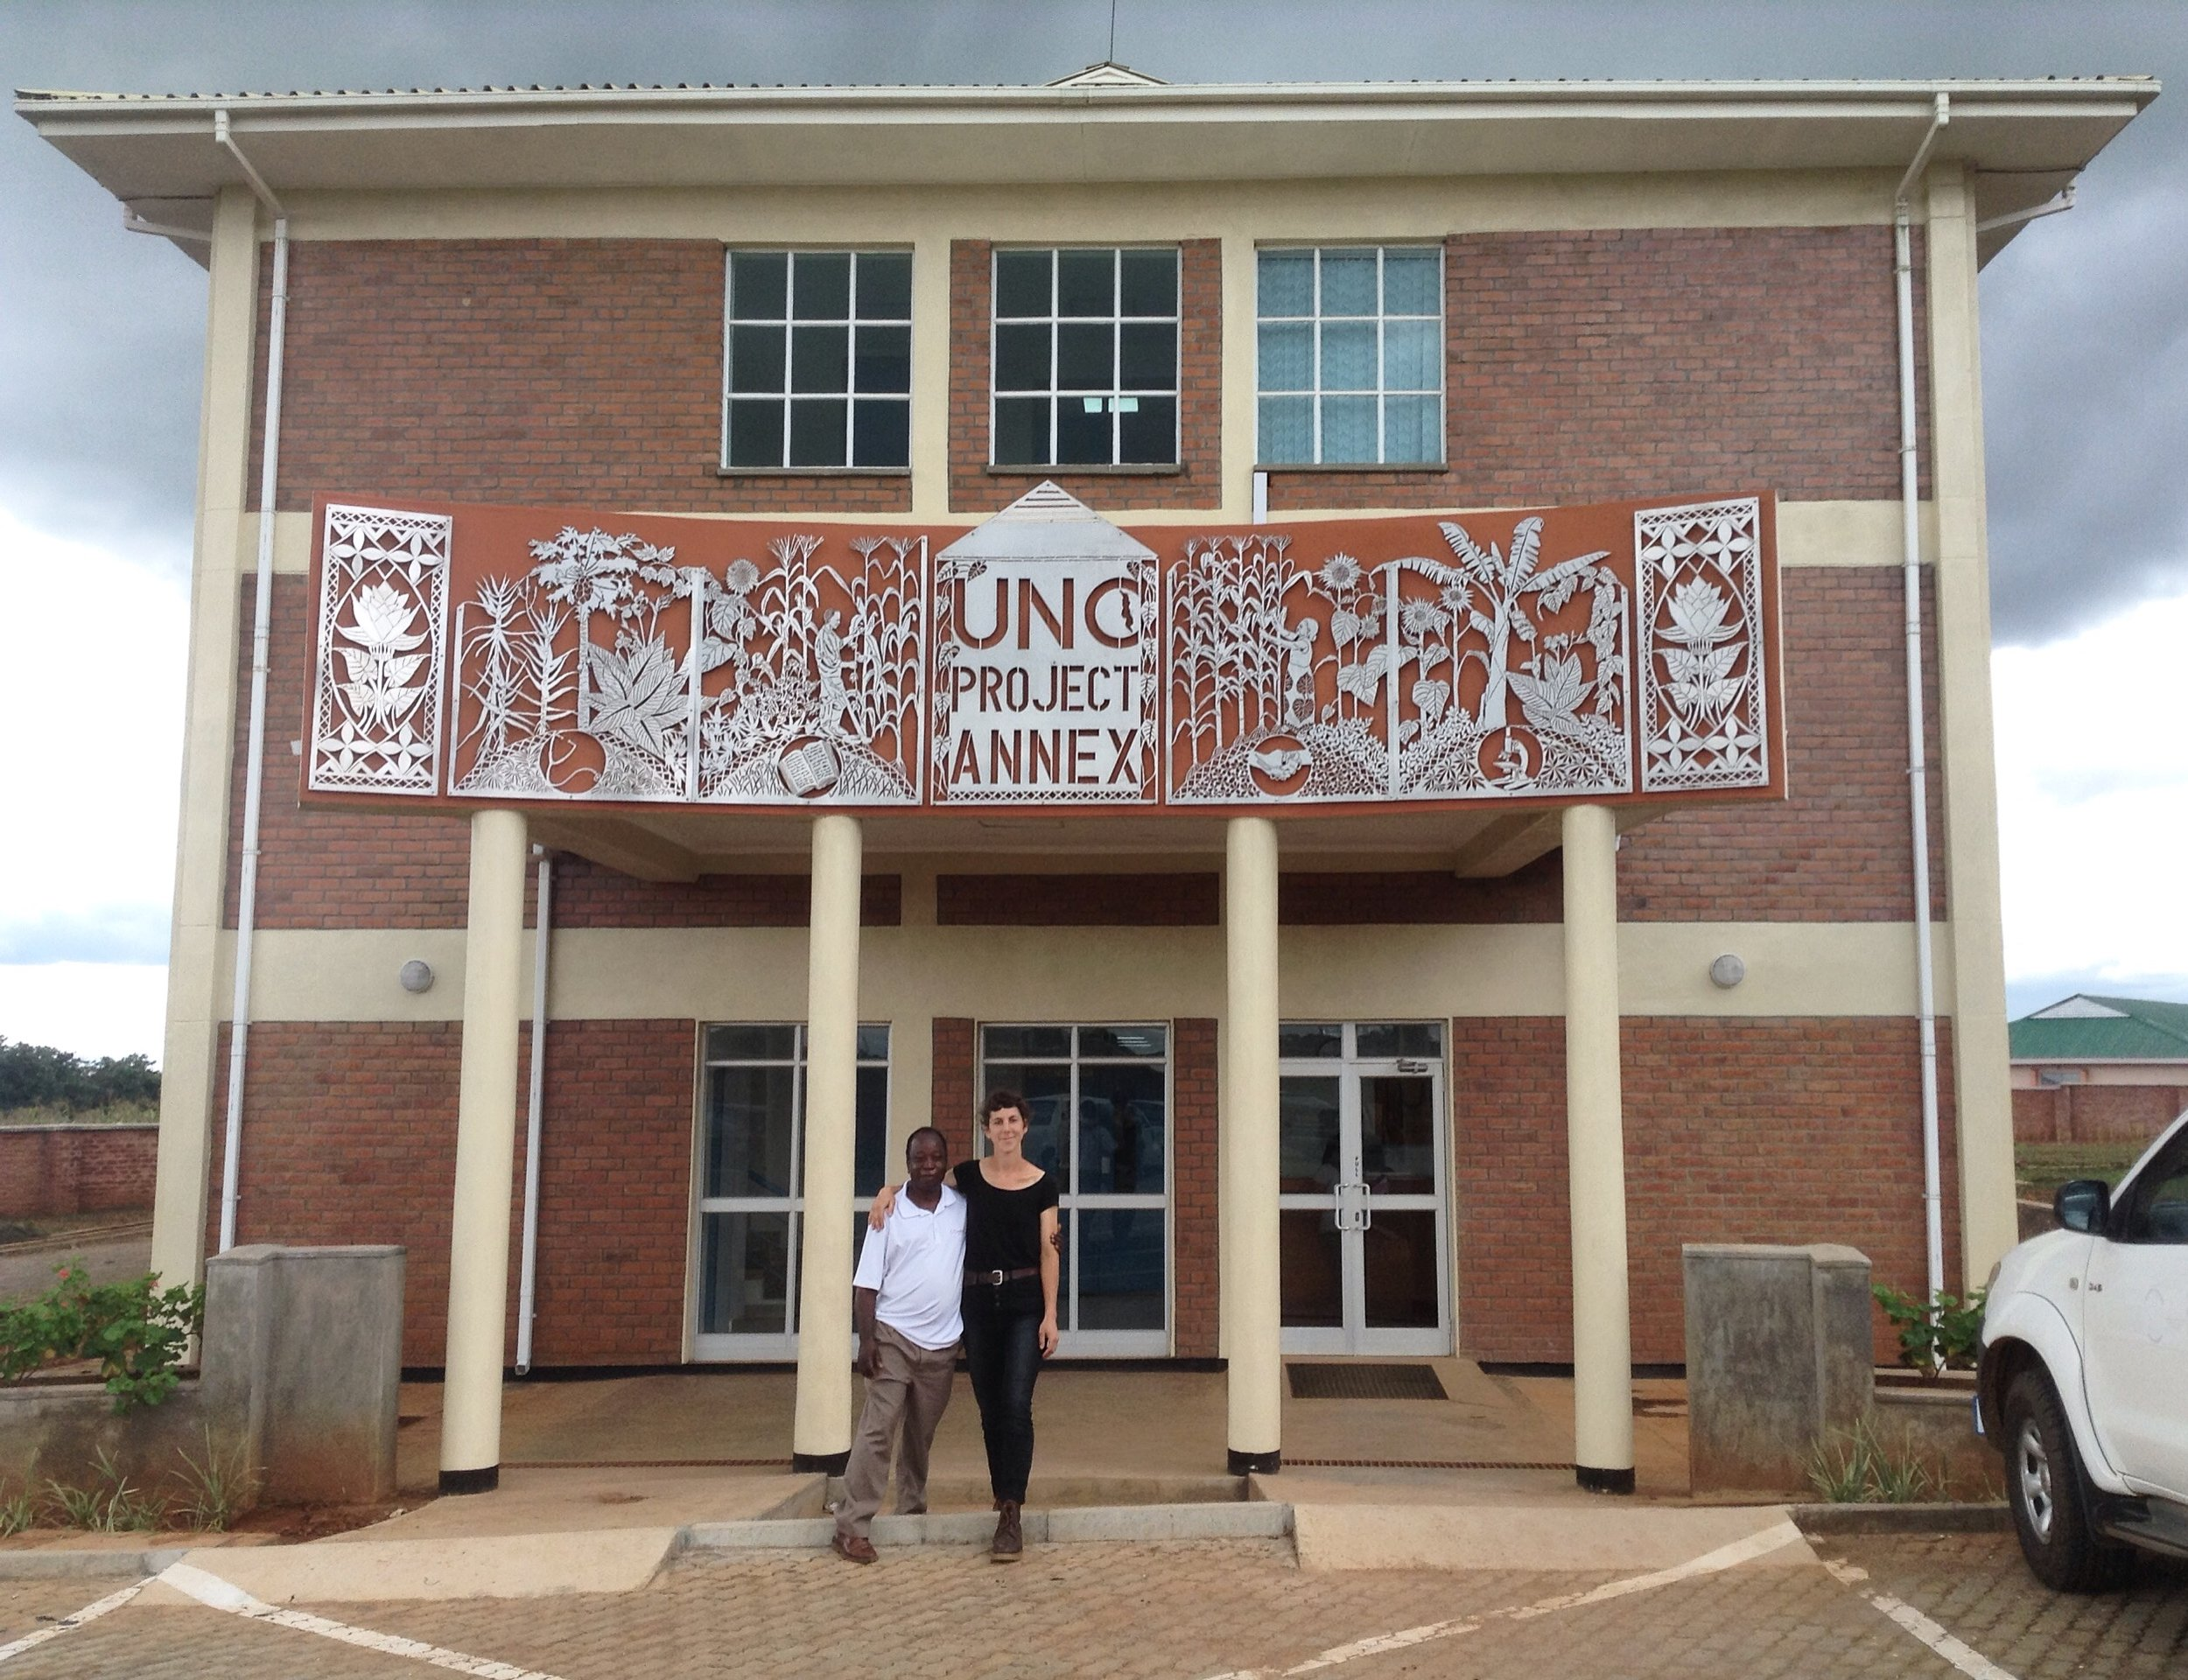 UNC Project Annex sign (Lilongwe, Malawi)